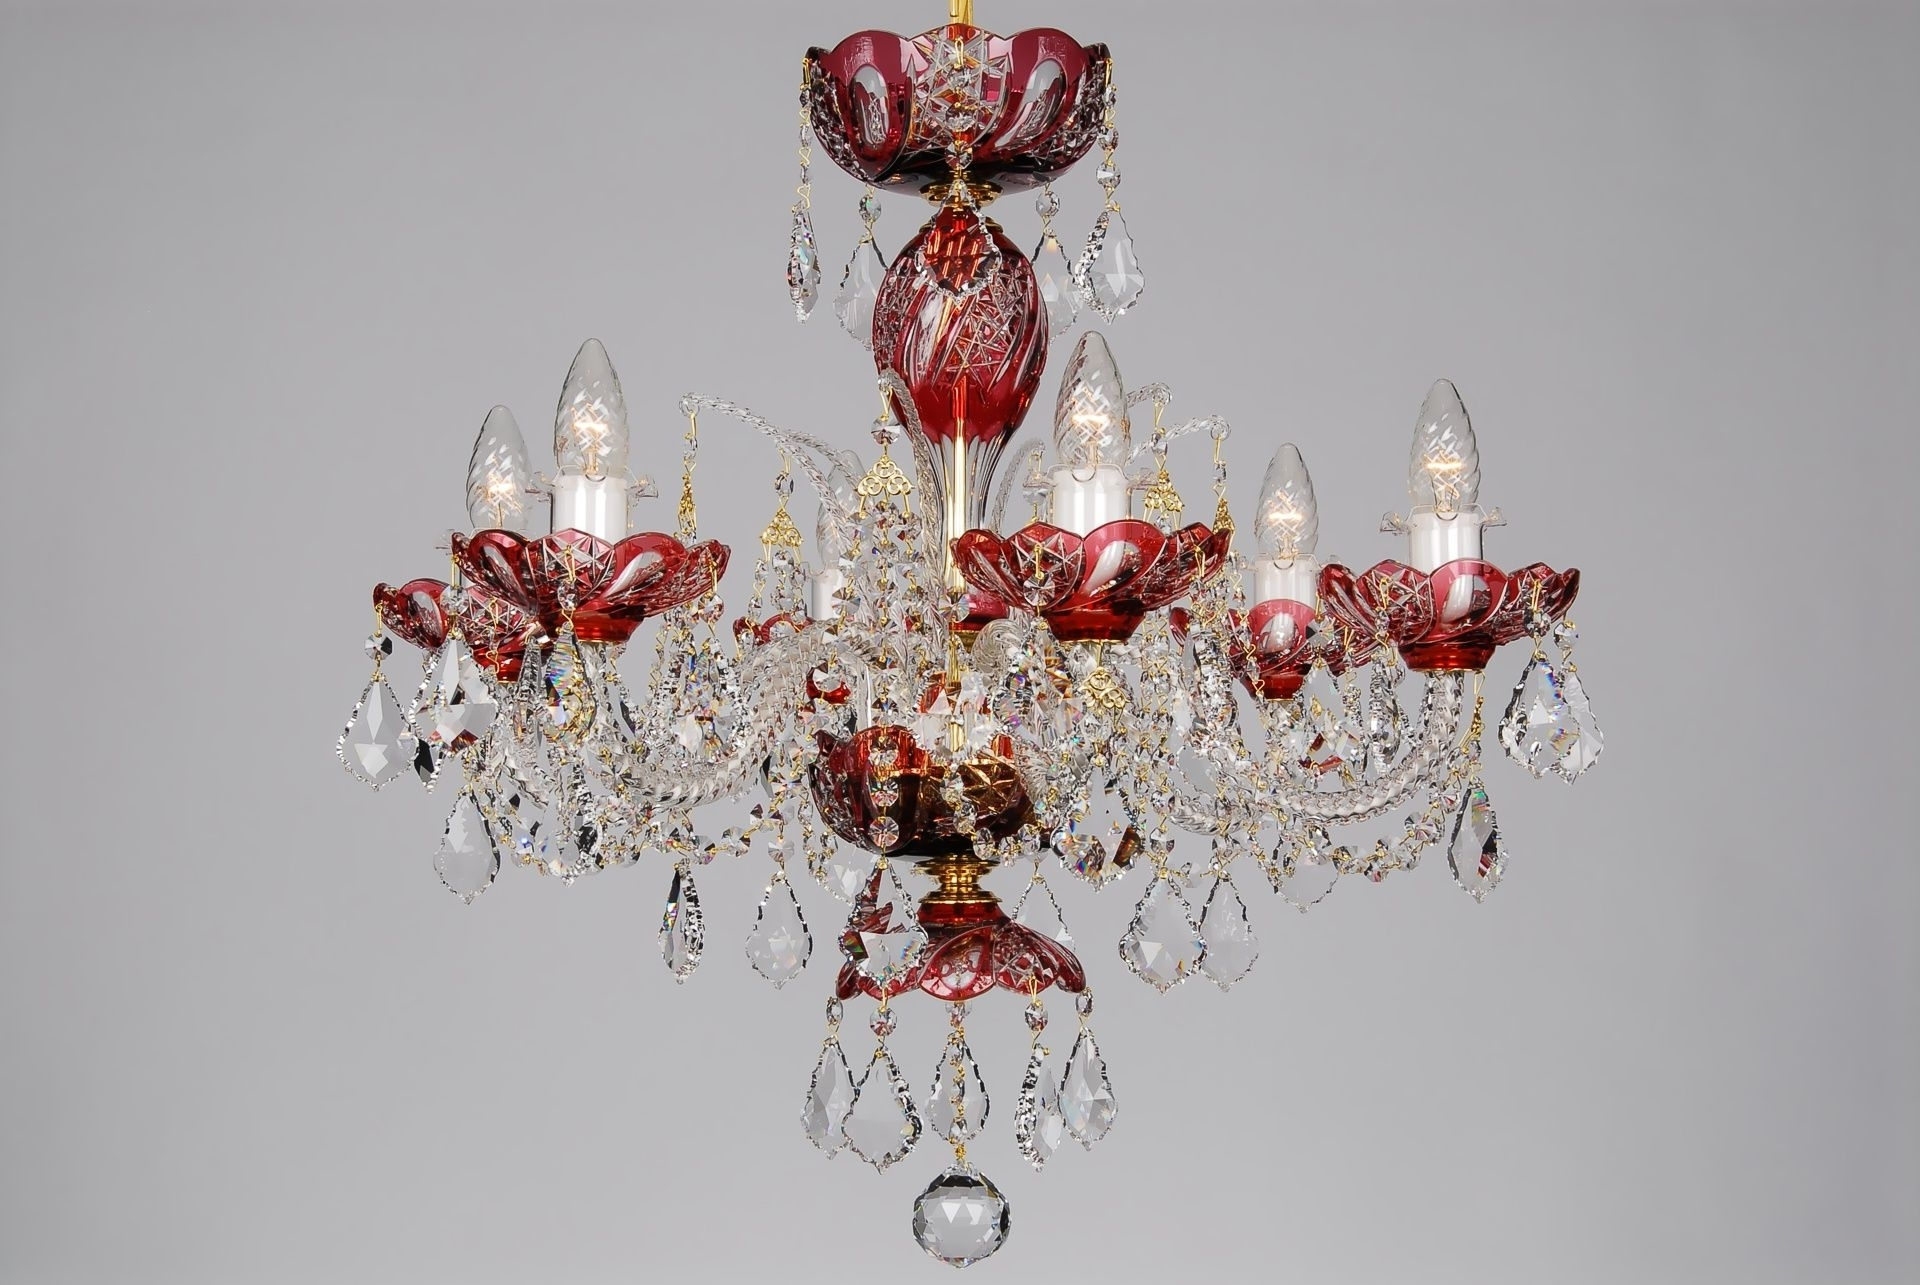 Small Red Chandelier With Current A Small Red Crystal Chandelier Decorated With Swarovski Trimmings (View 2 of 15)